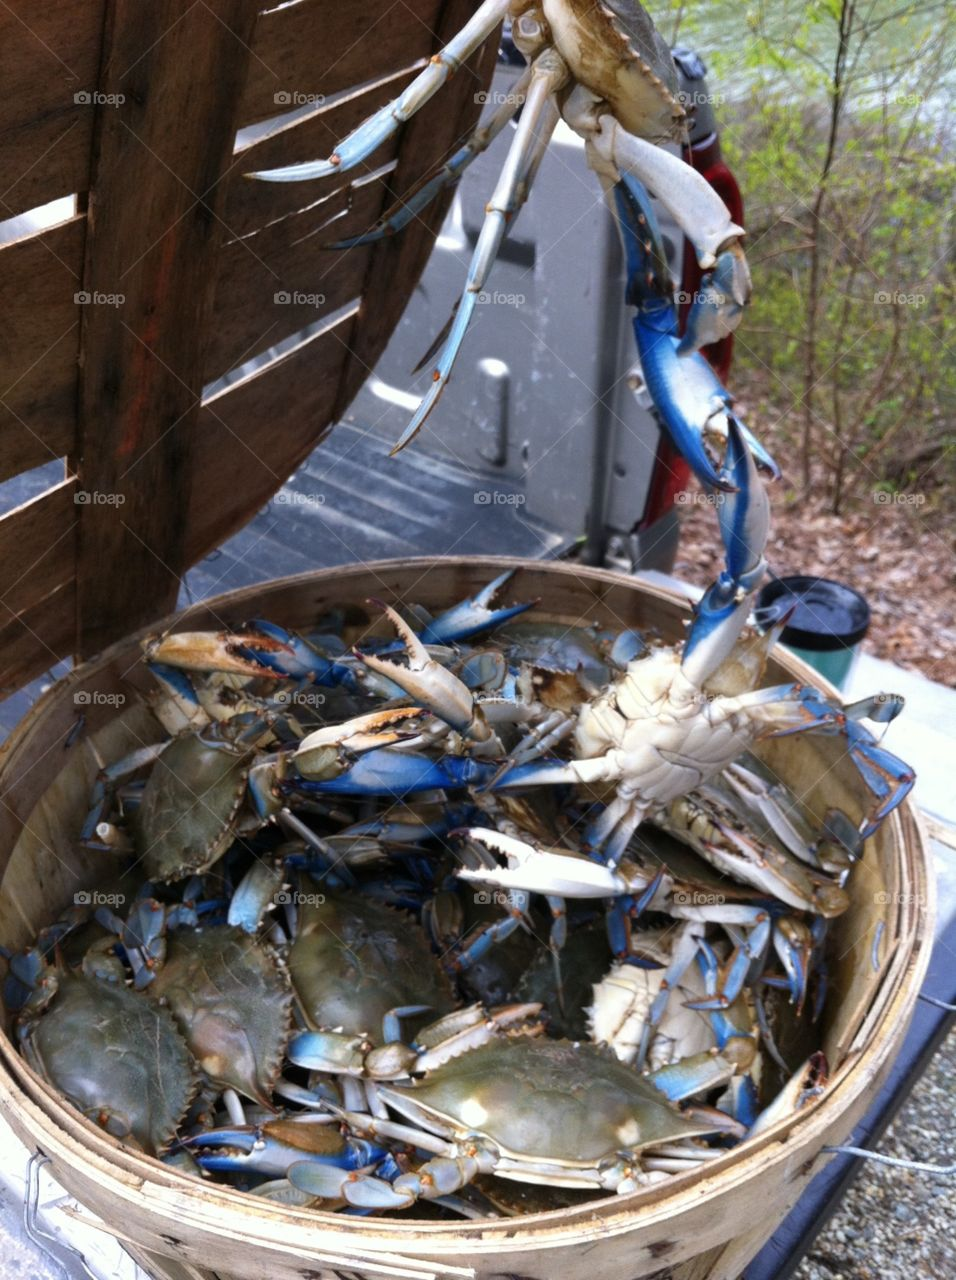 The mighty blue crab of the Chesapeake Bay!